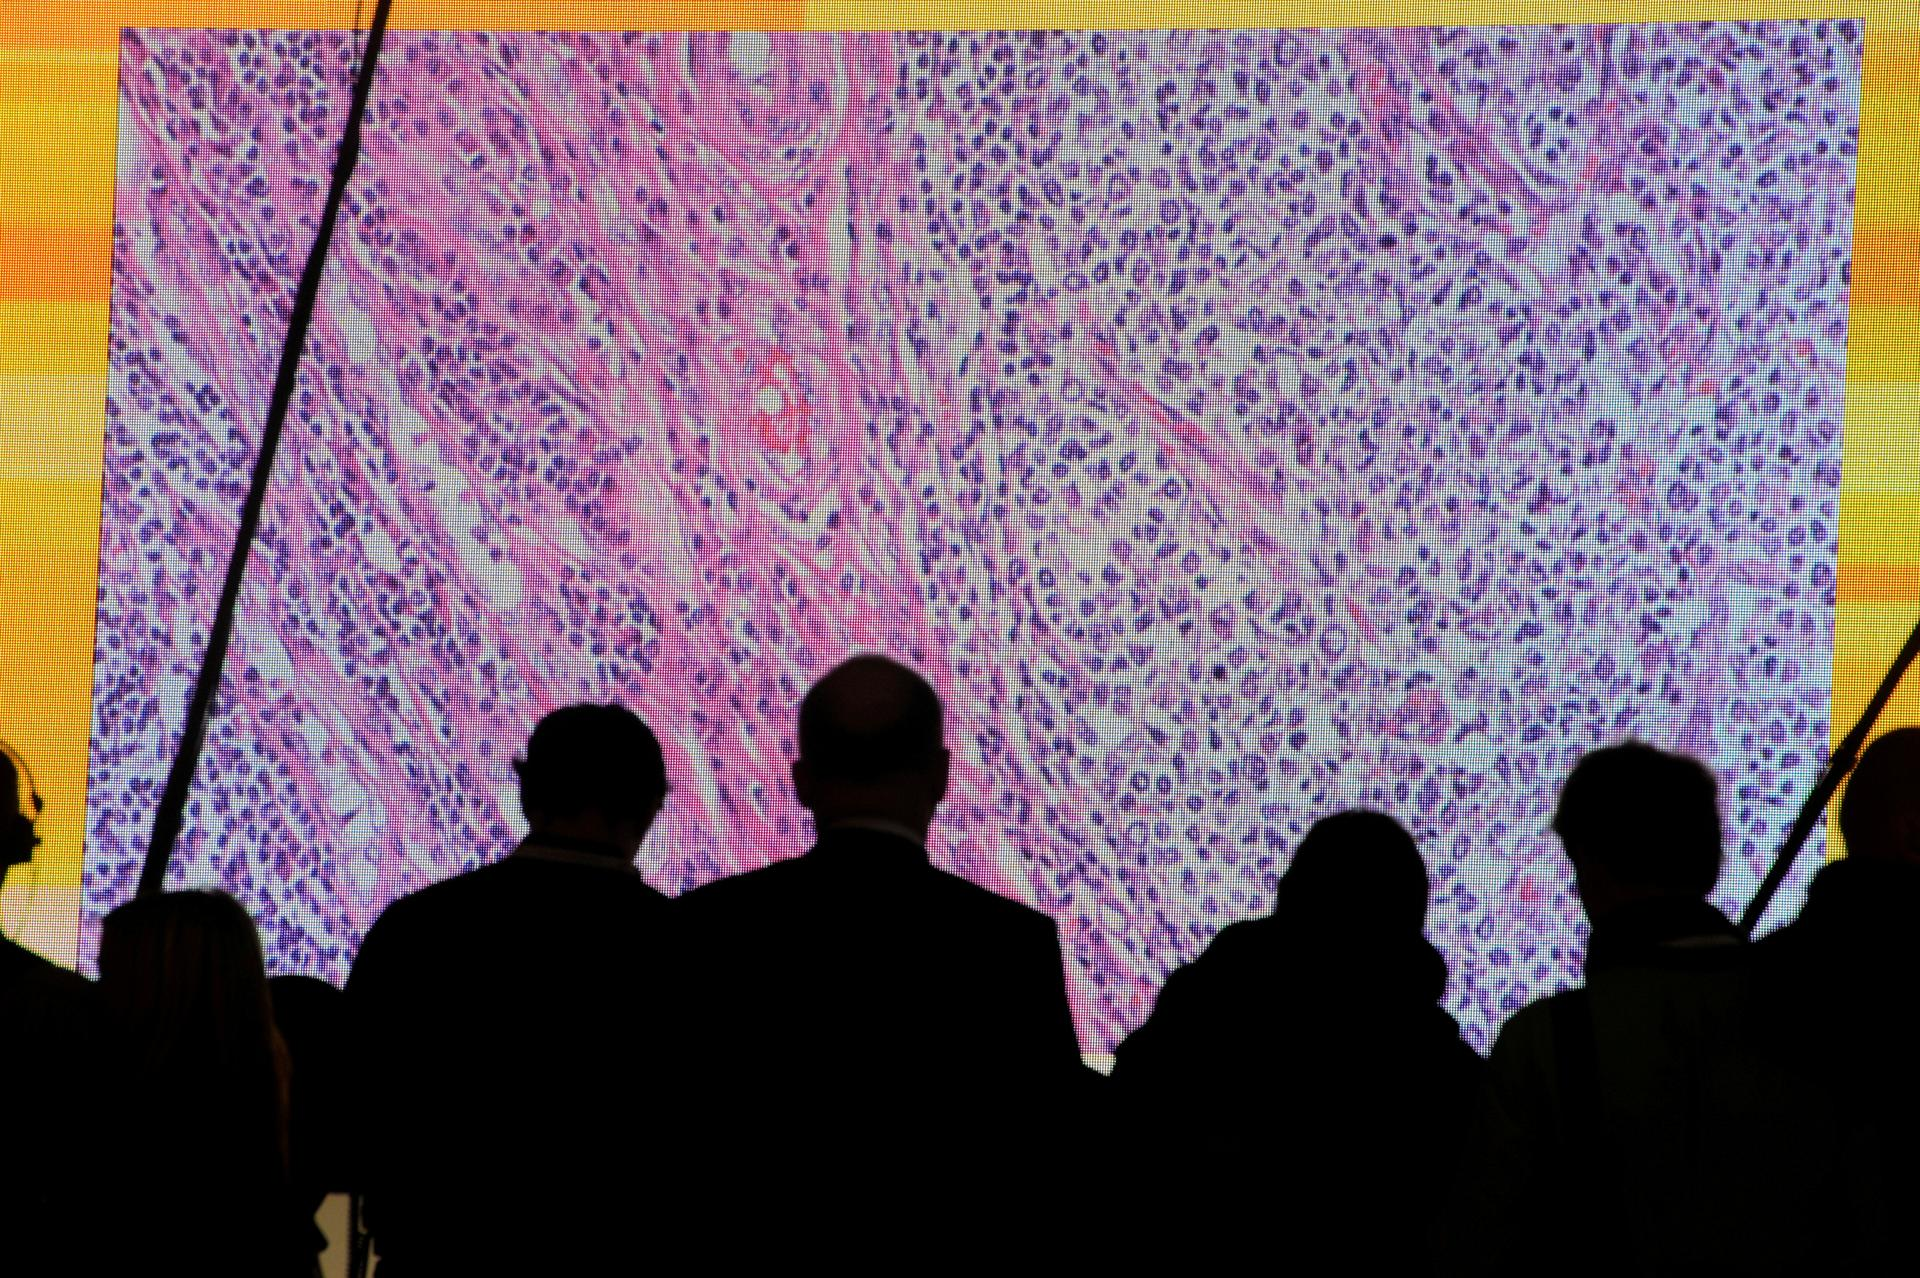 Cancer overtakes heart disease as biggest rich-world killer